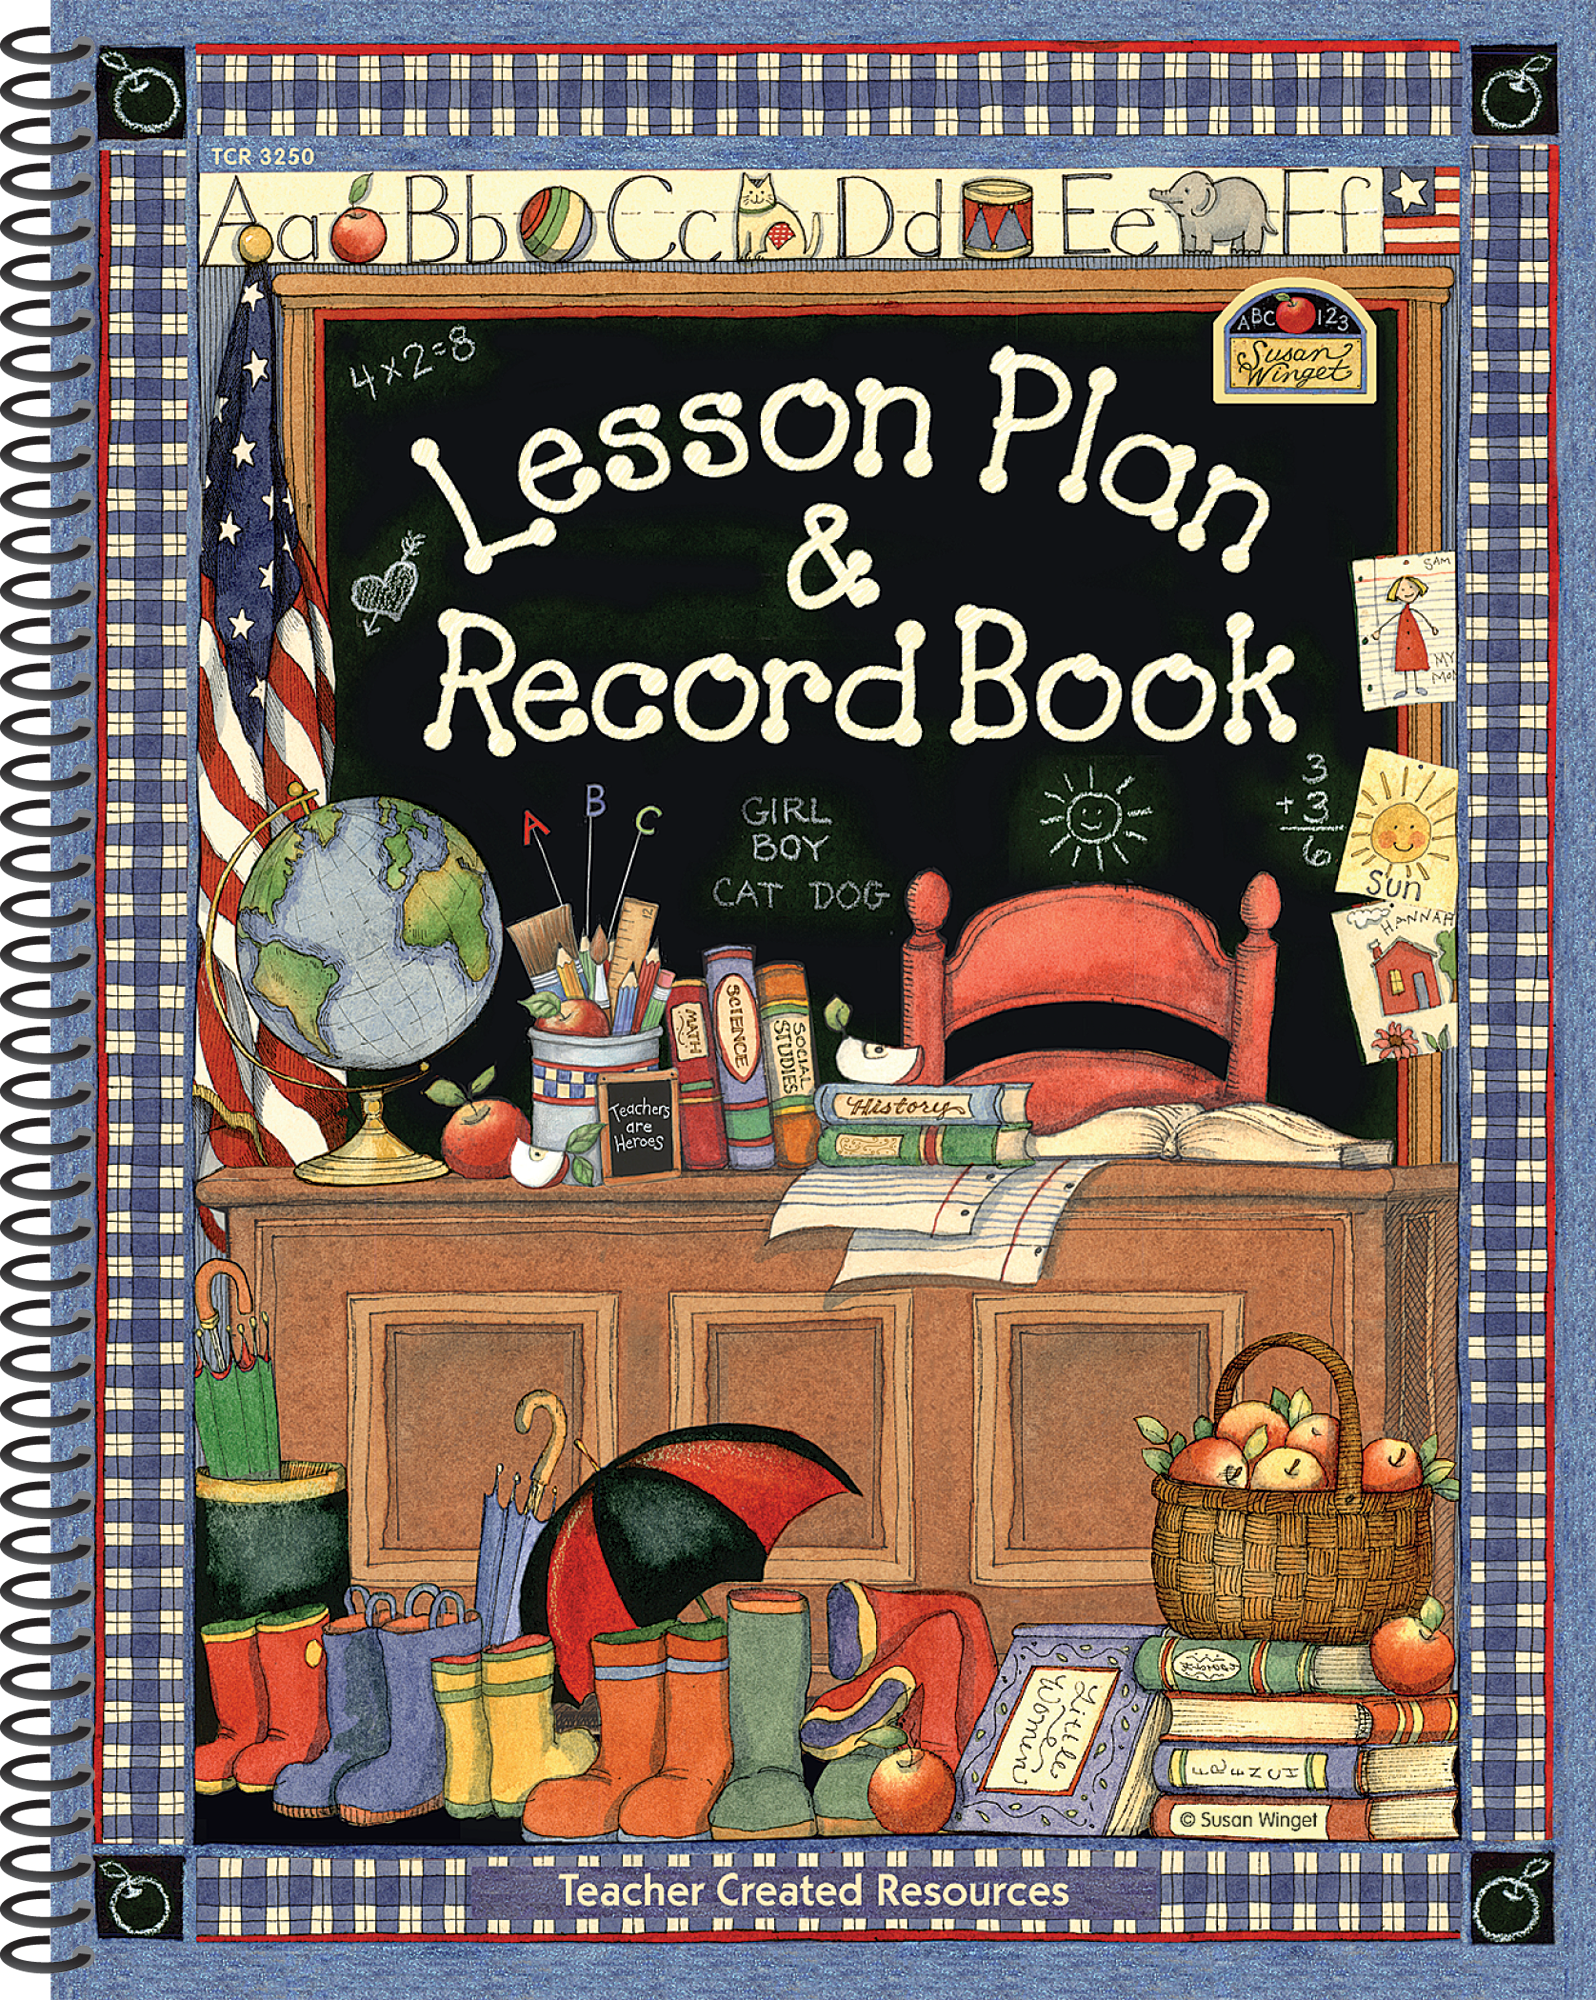 Classroom Decor For Kindergarten ~ Lesson plan record book from susan winget tcr